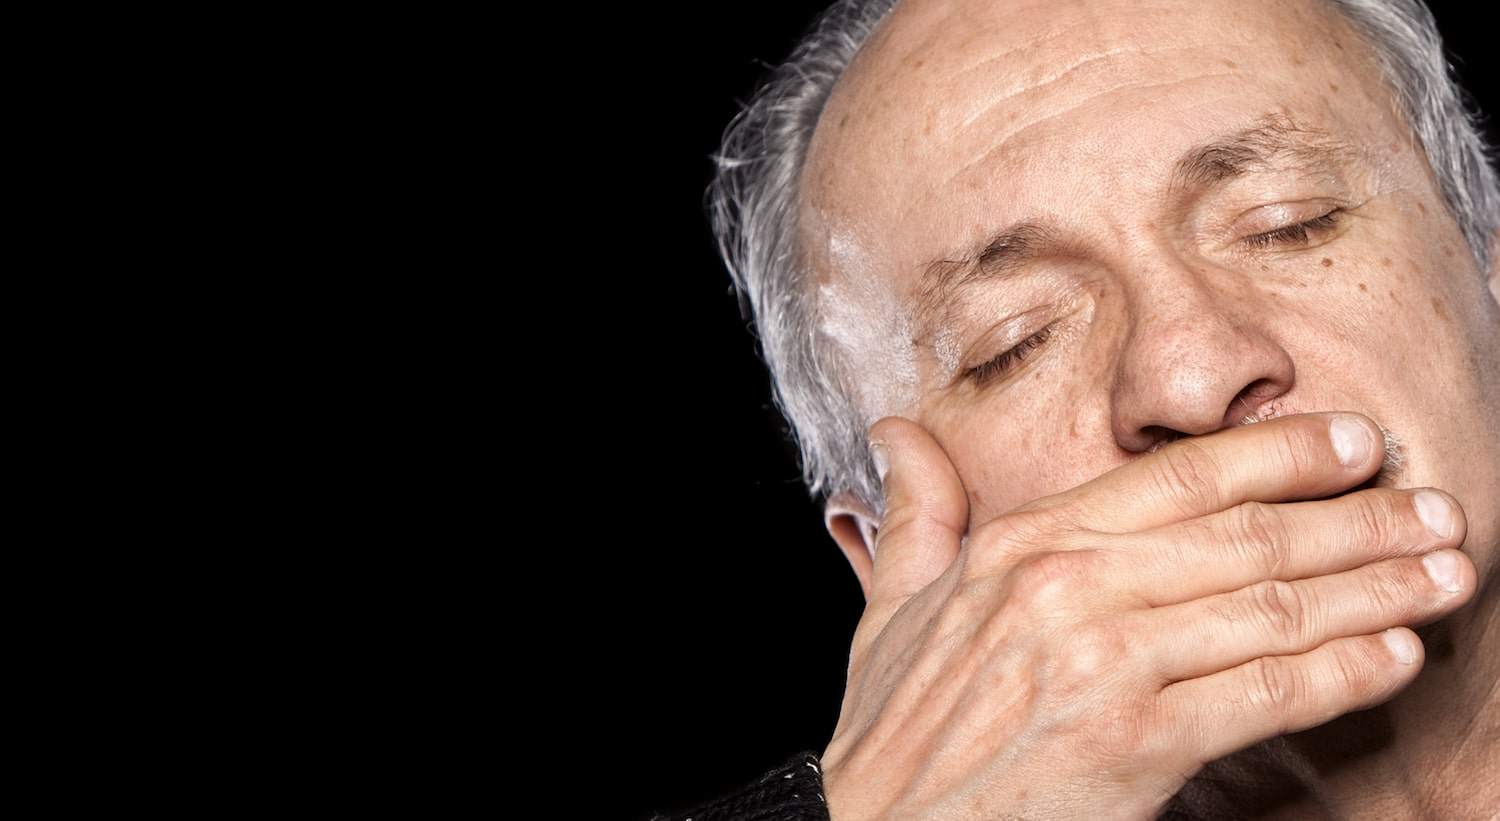 older-man-covering-mouth (1)